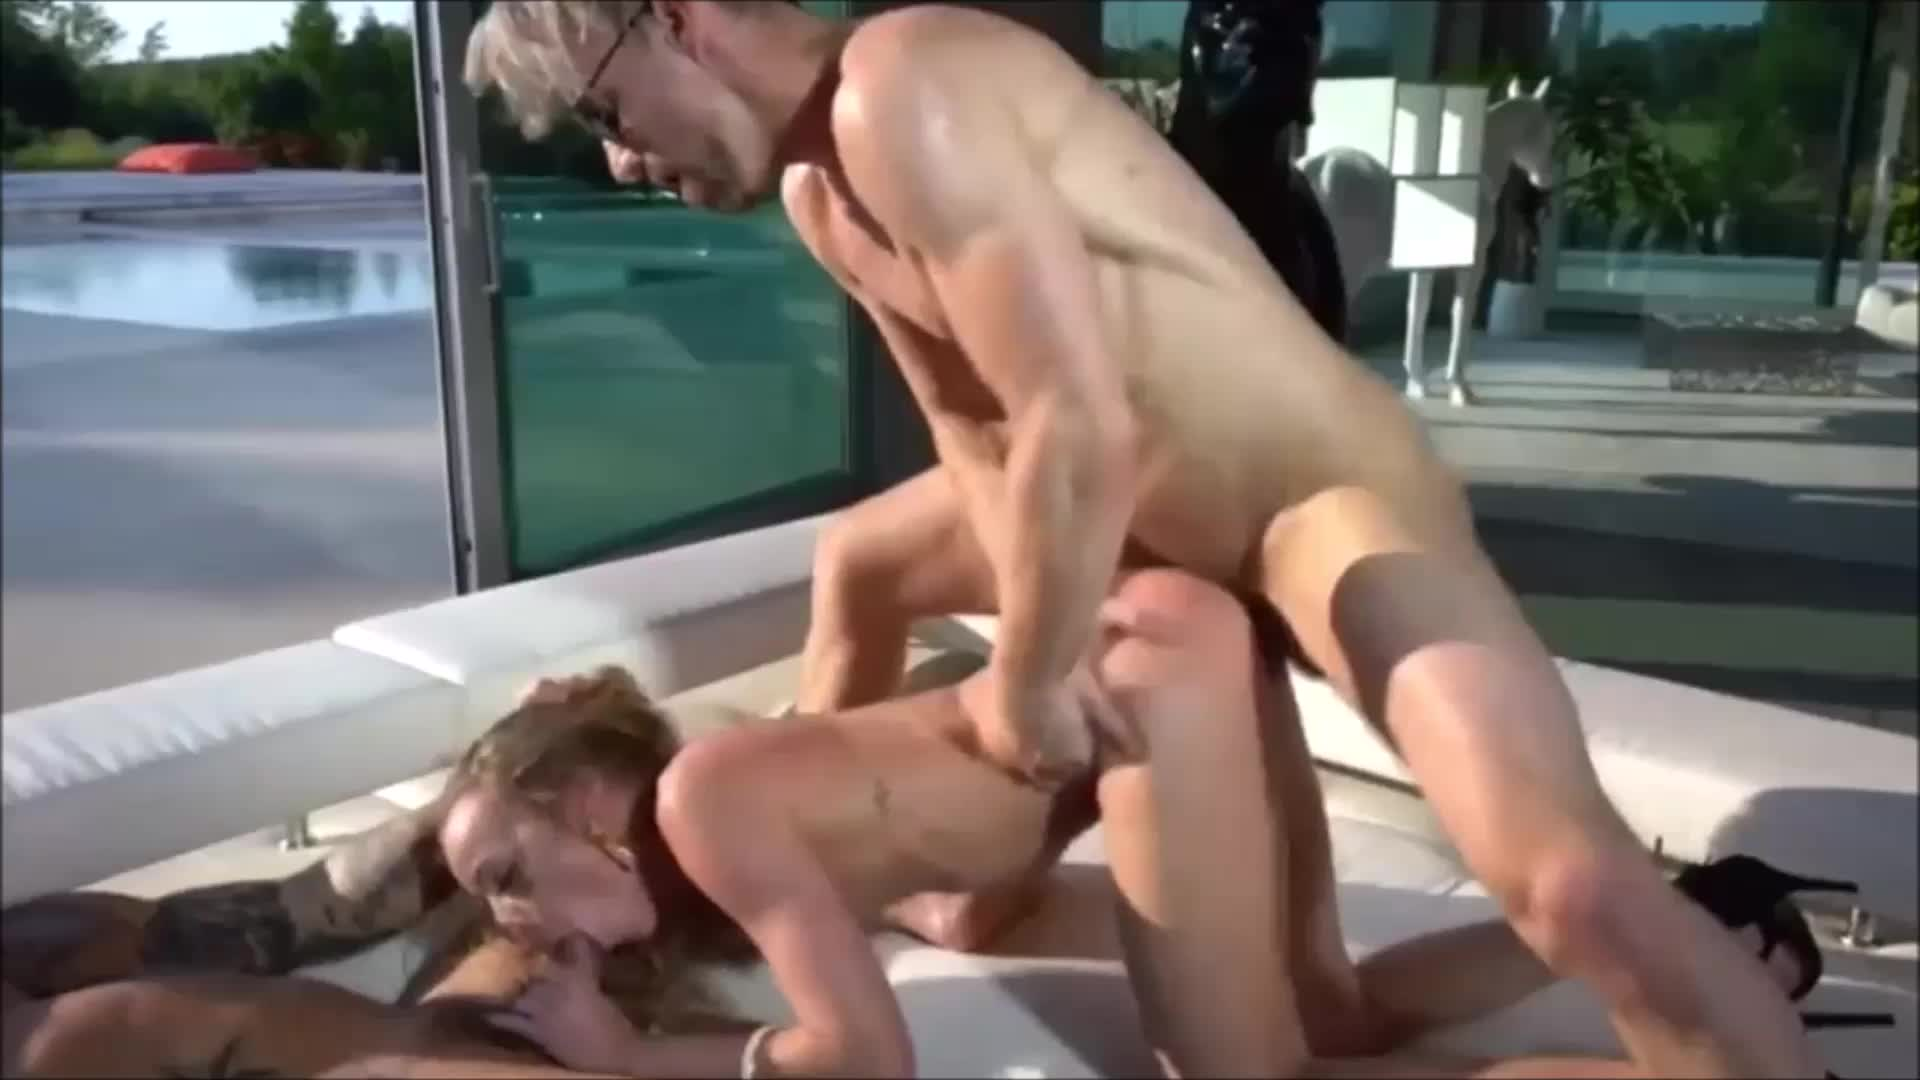 Hot Petite Pornstar Destroyed By Two Big Dick